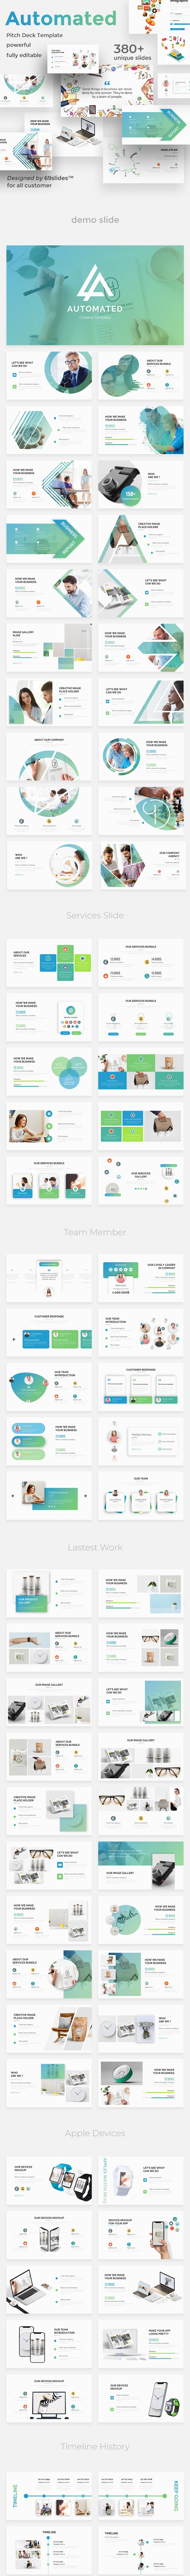 Business Automated Pitch Deck Powerpoint Template - Business PowerPoint Templates